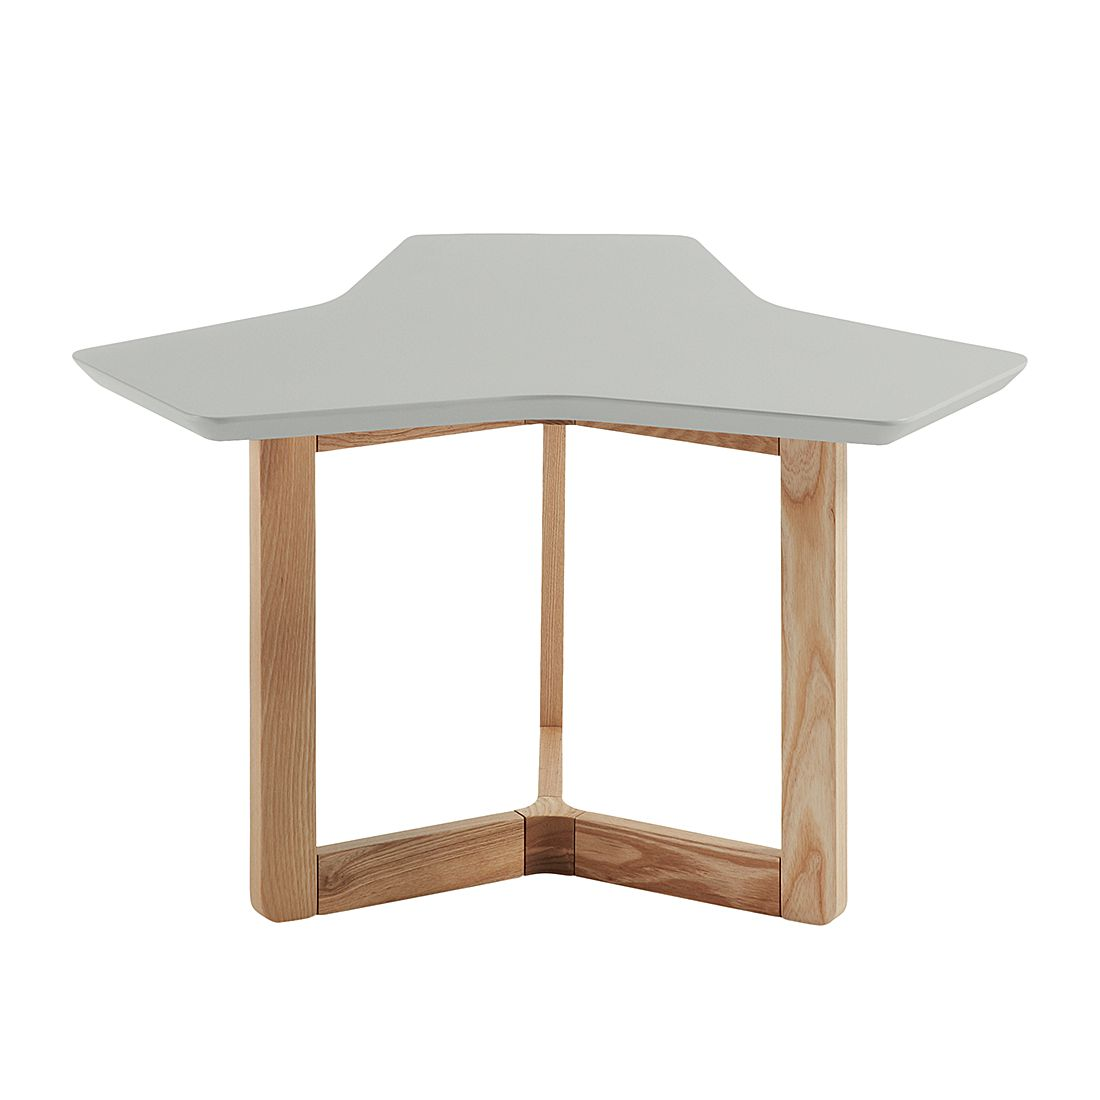 Table d'appoint Solberga - Gris mat / Frêne, Morteens